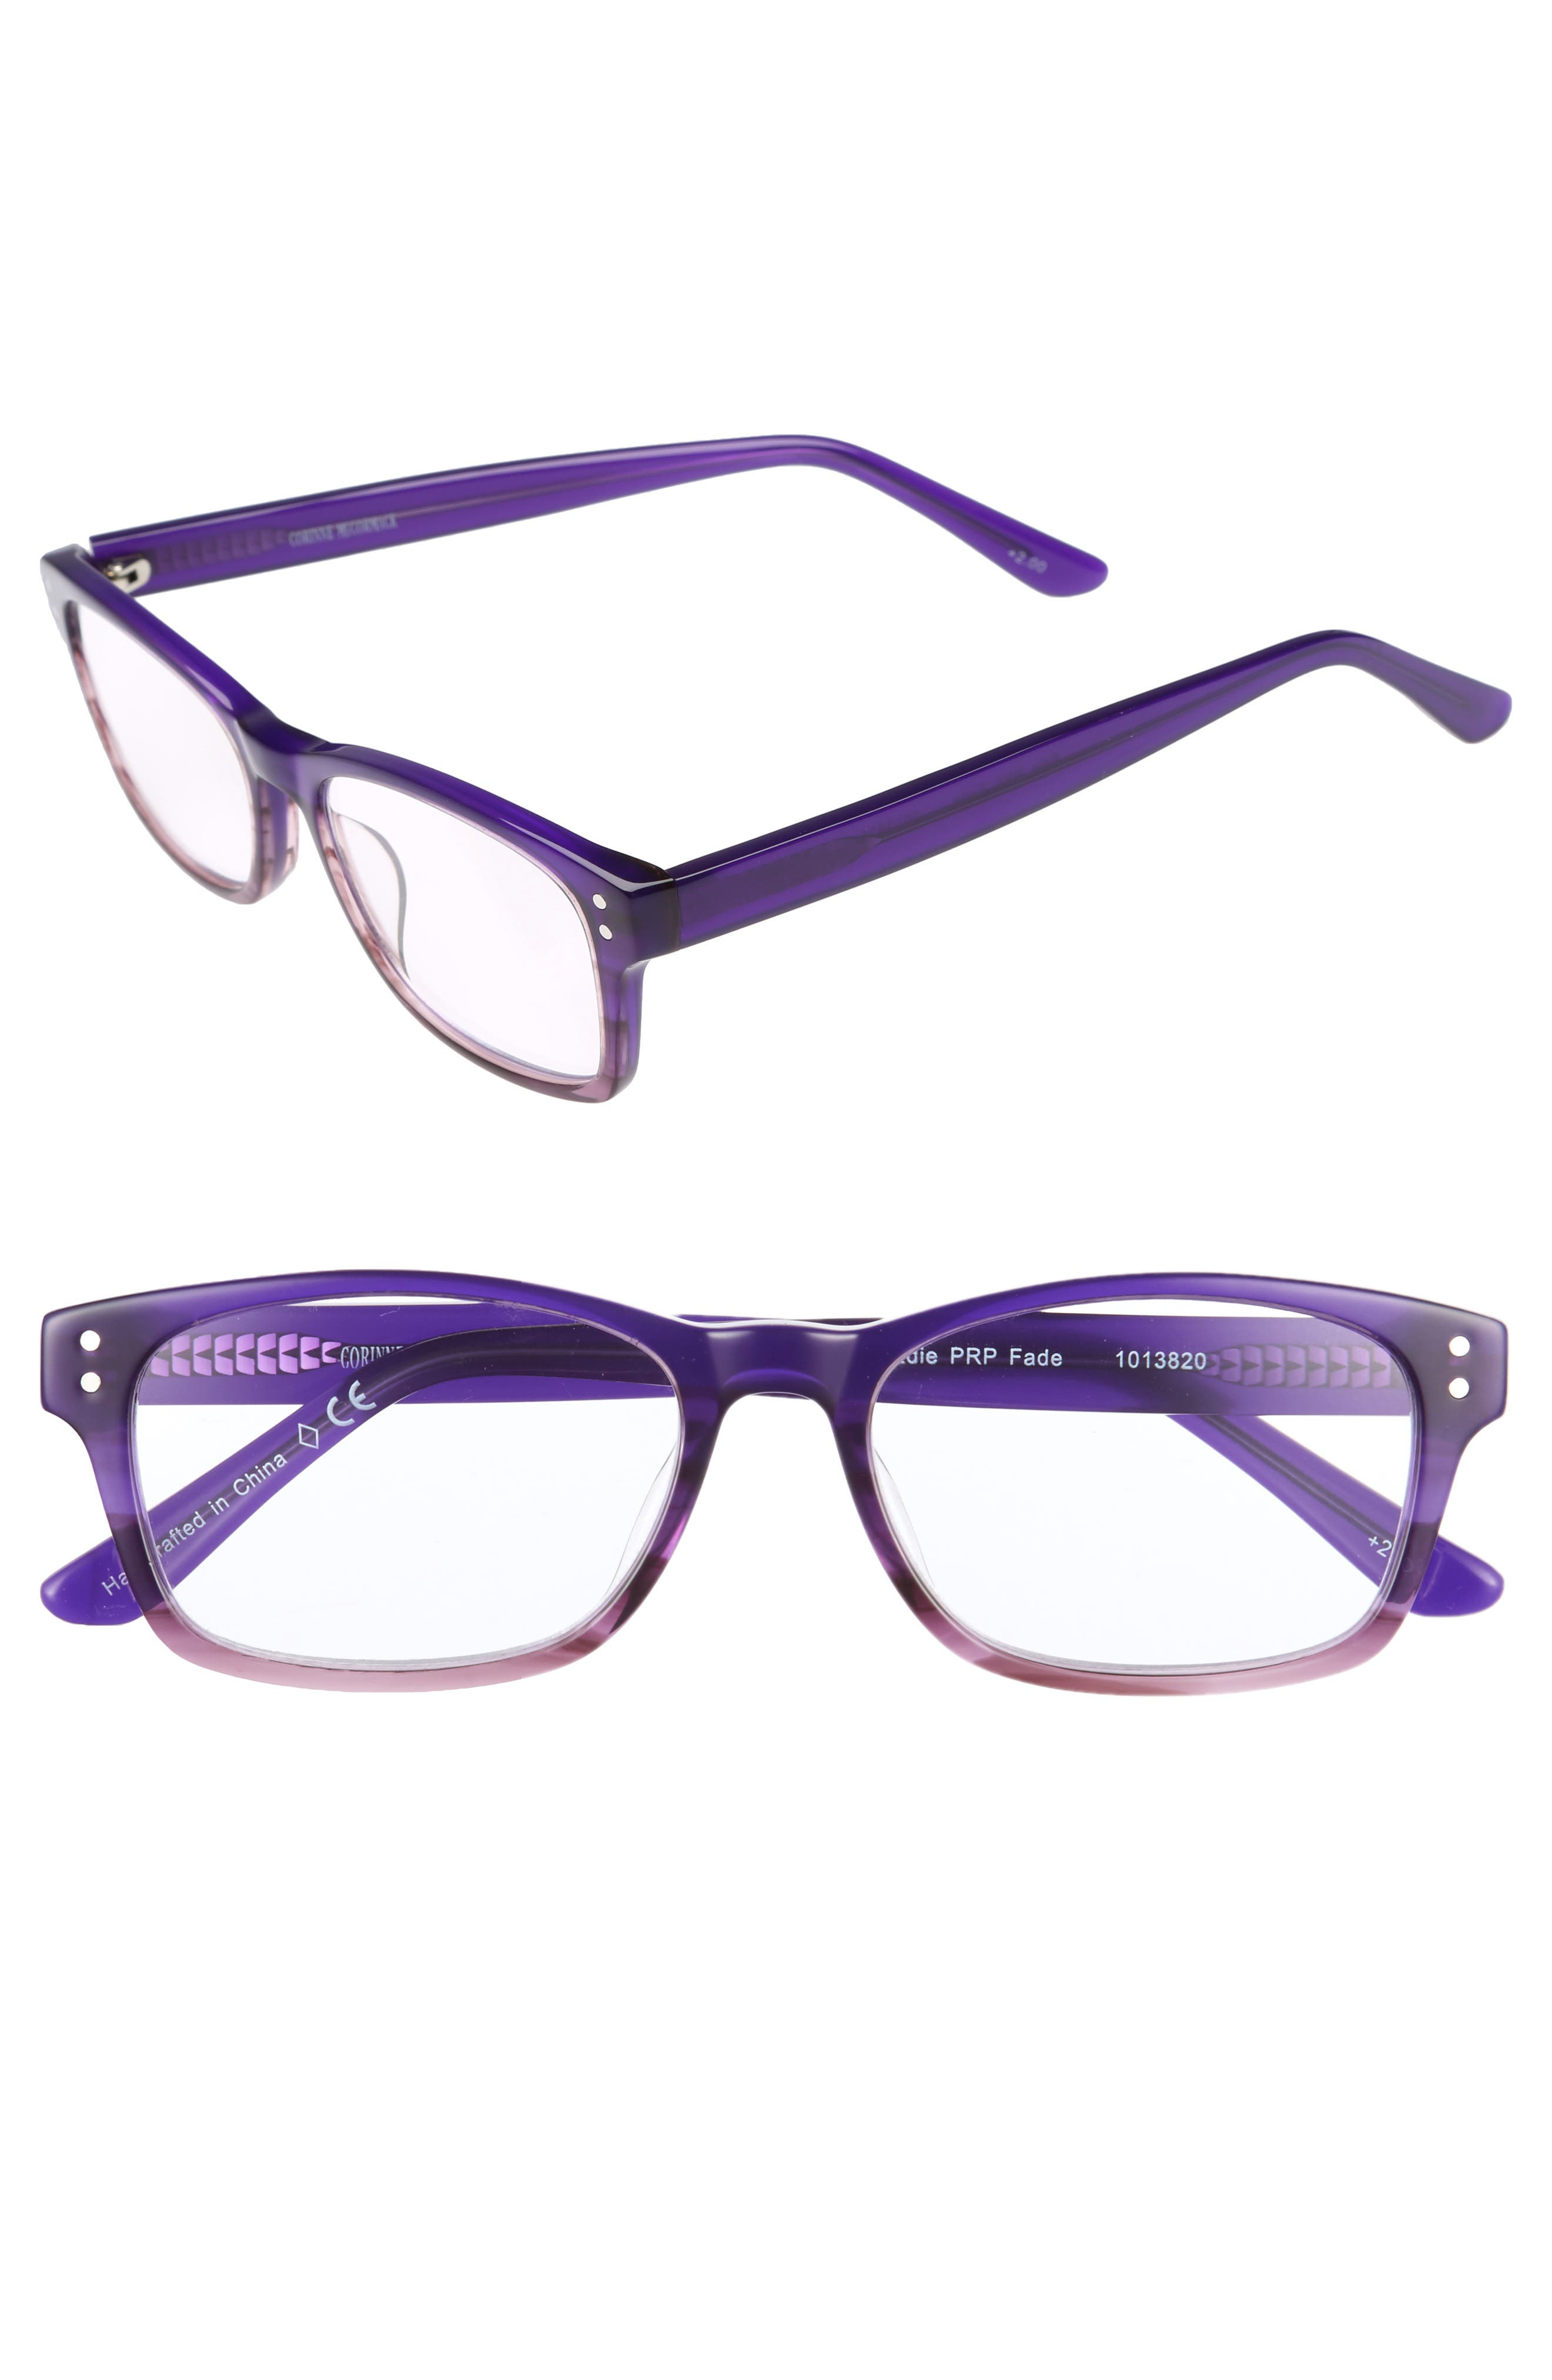 Edie 50mm Reading Glasses,                         Main,                         color, 500